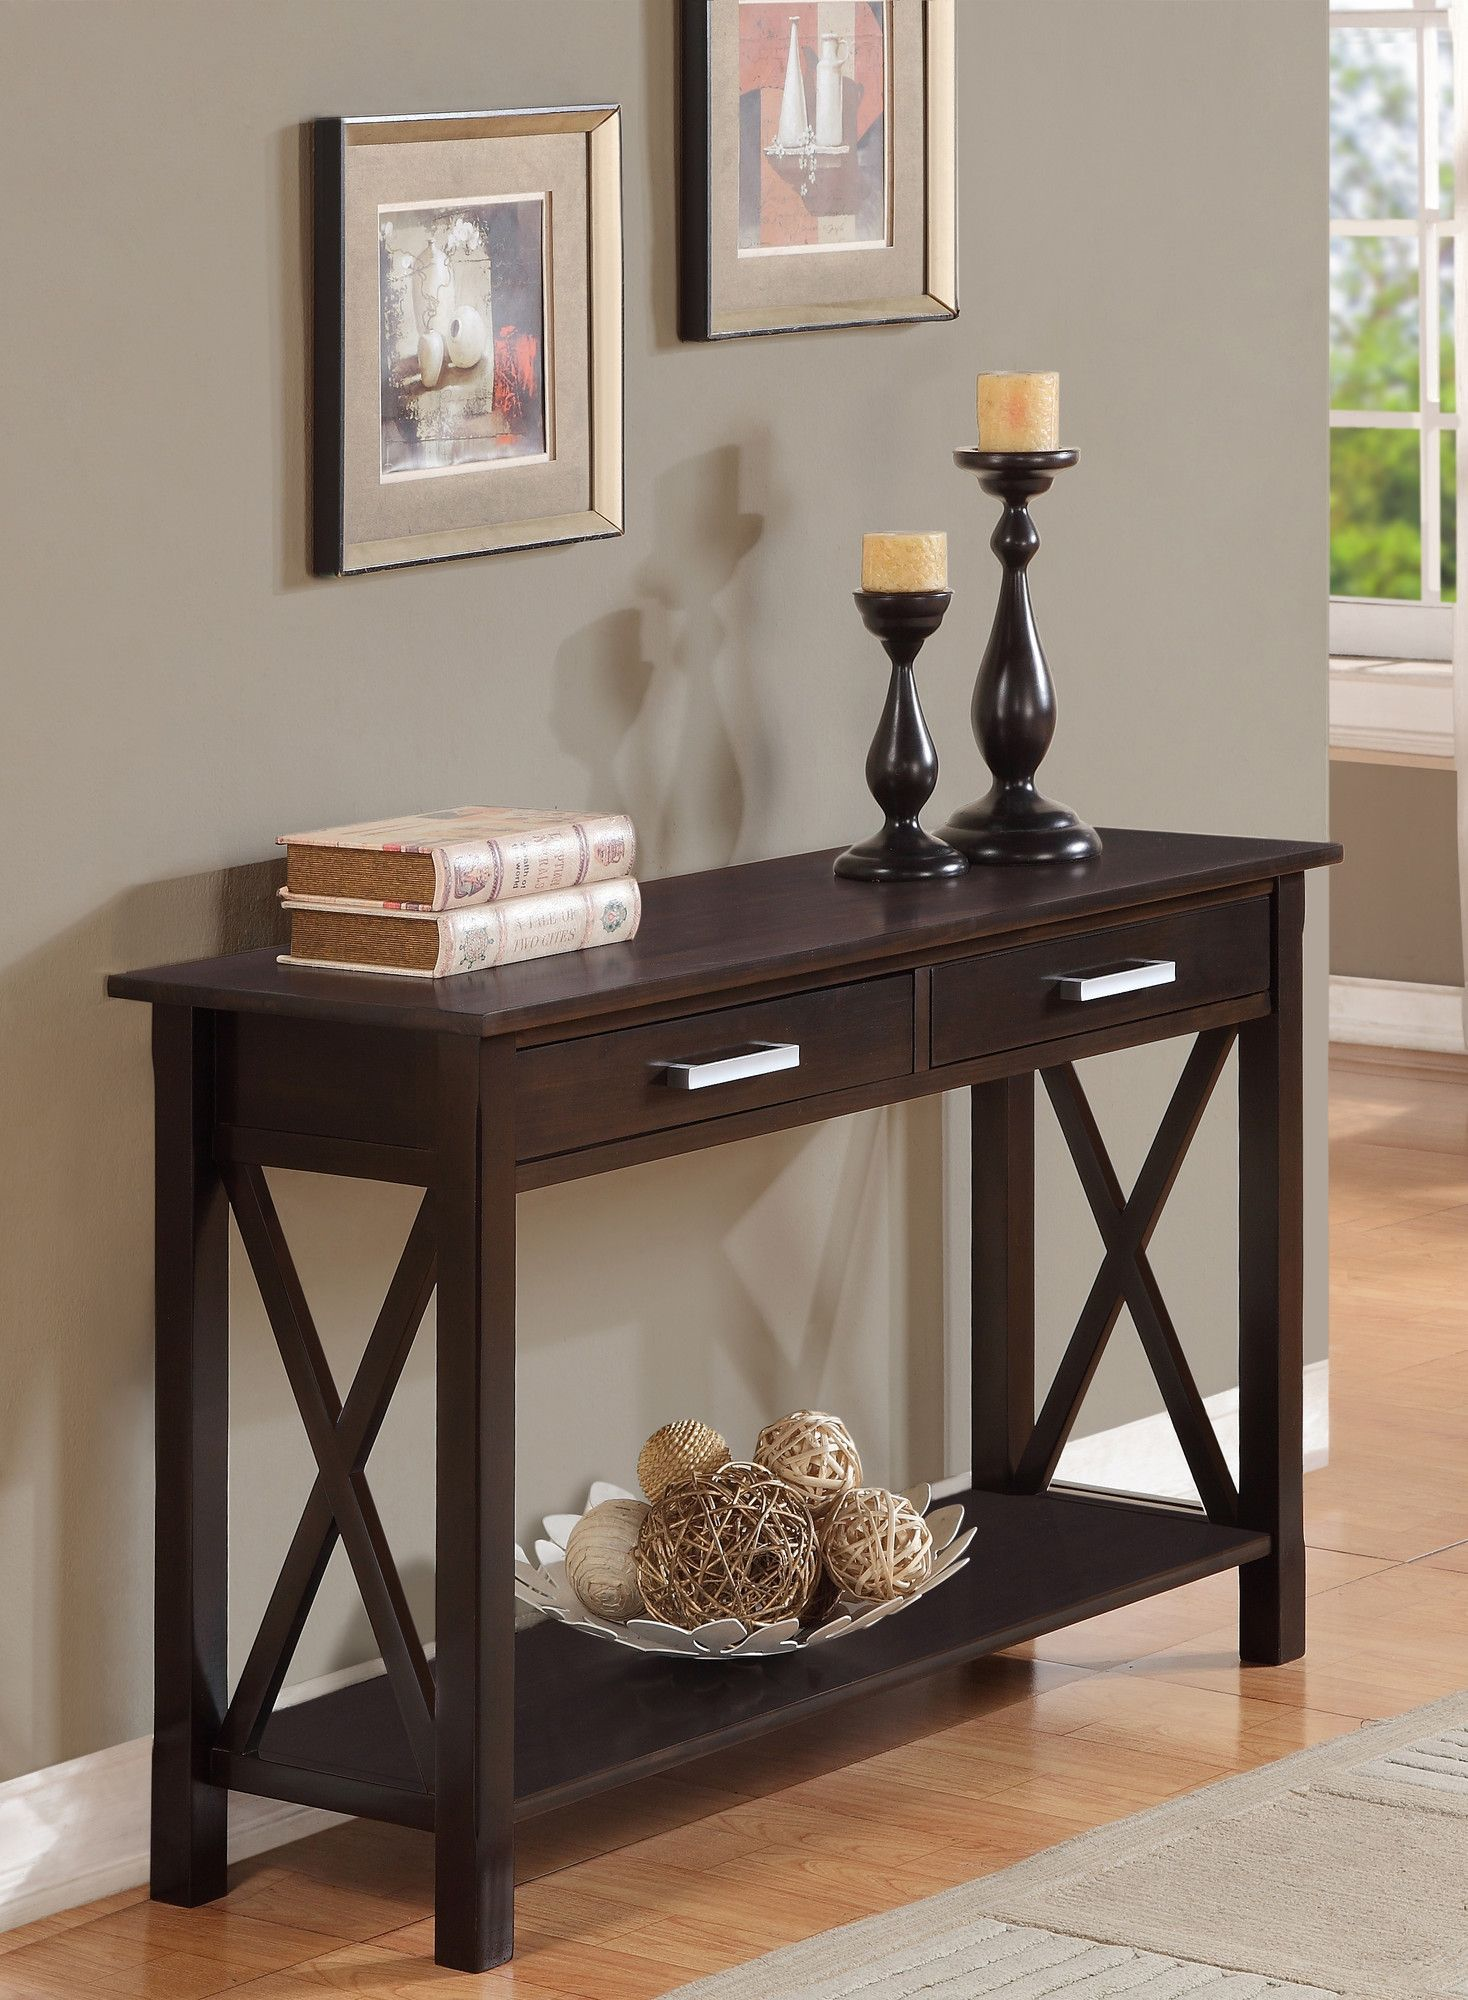 Super Burriss Console Table Downstairs Hallway In 2019 Console Ibusinesslaw Wood Chair Design Ideas Ibusinesslaworg